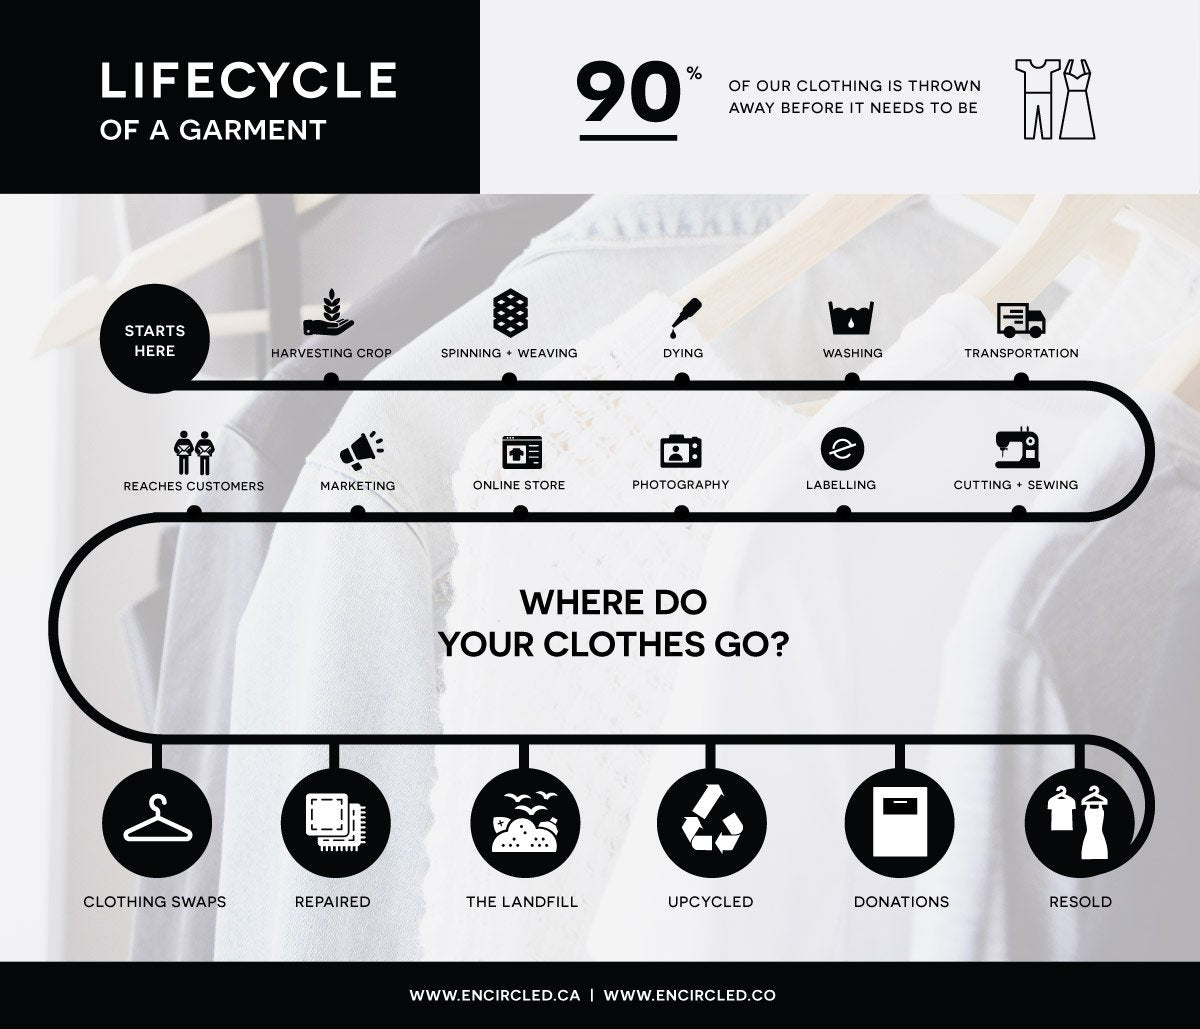 """Life cycle of a garment, from harvesting the materials to """"where to clothes go"""" and their disposal methods"""